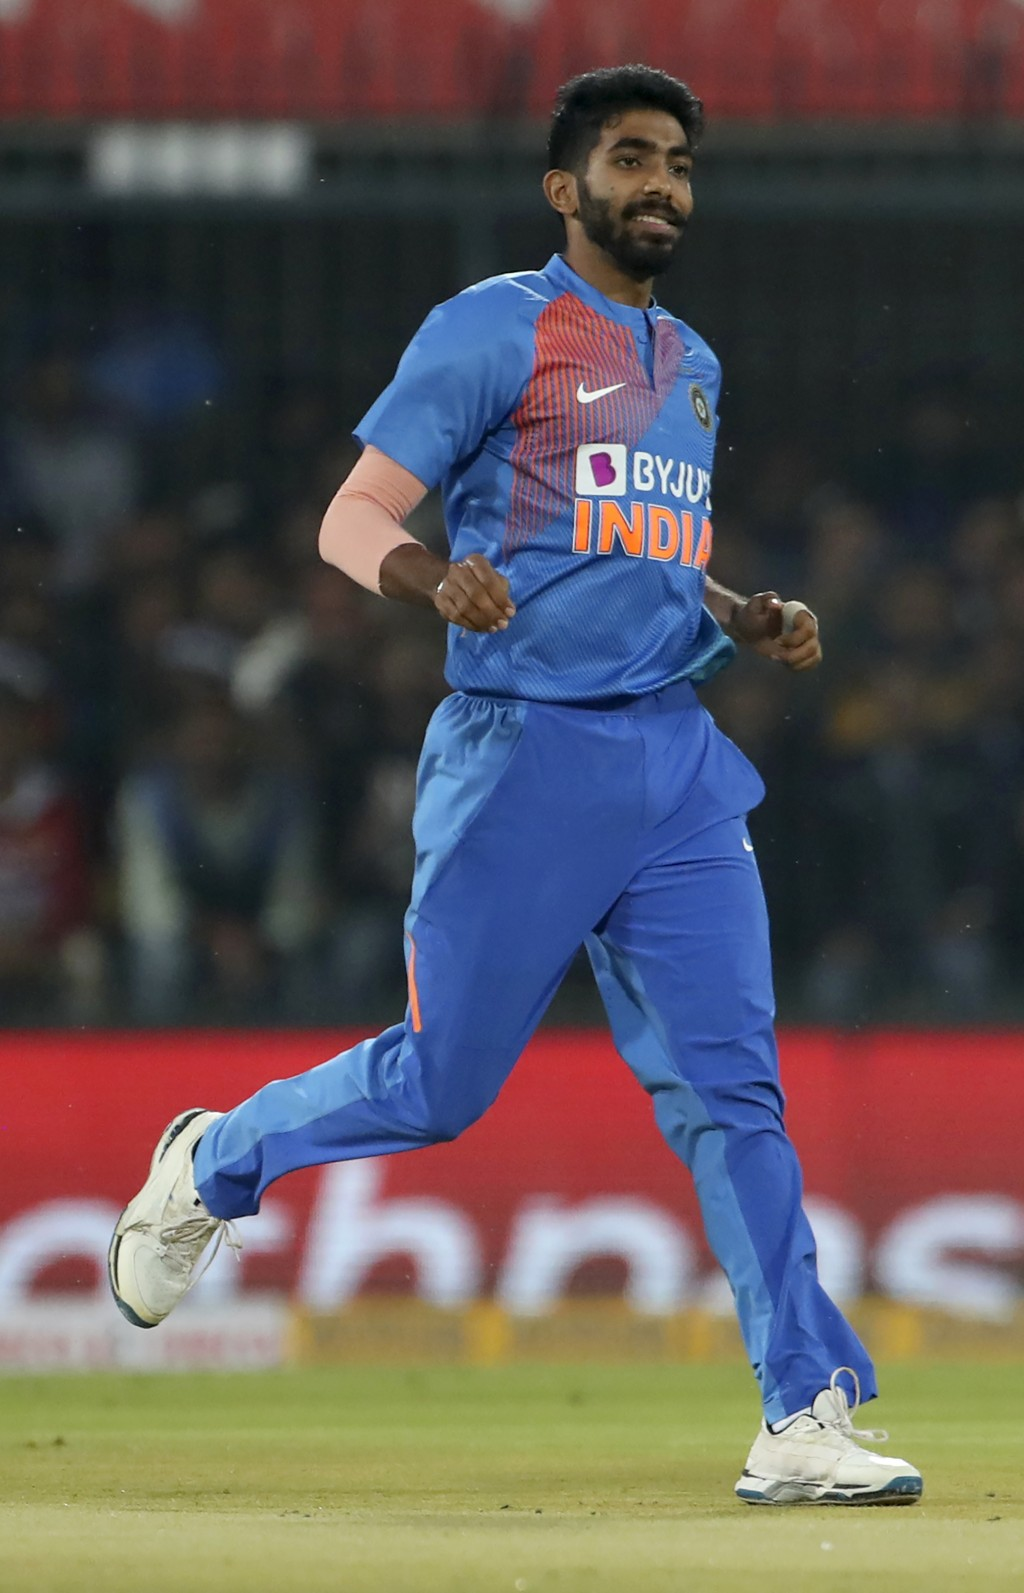 India's Jasprit Bumrah reacts after bowling a delivery during the second Twenty20 international cricket match between India and Sri Lanka in Indore, I...